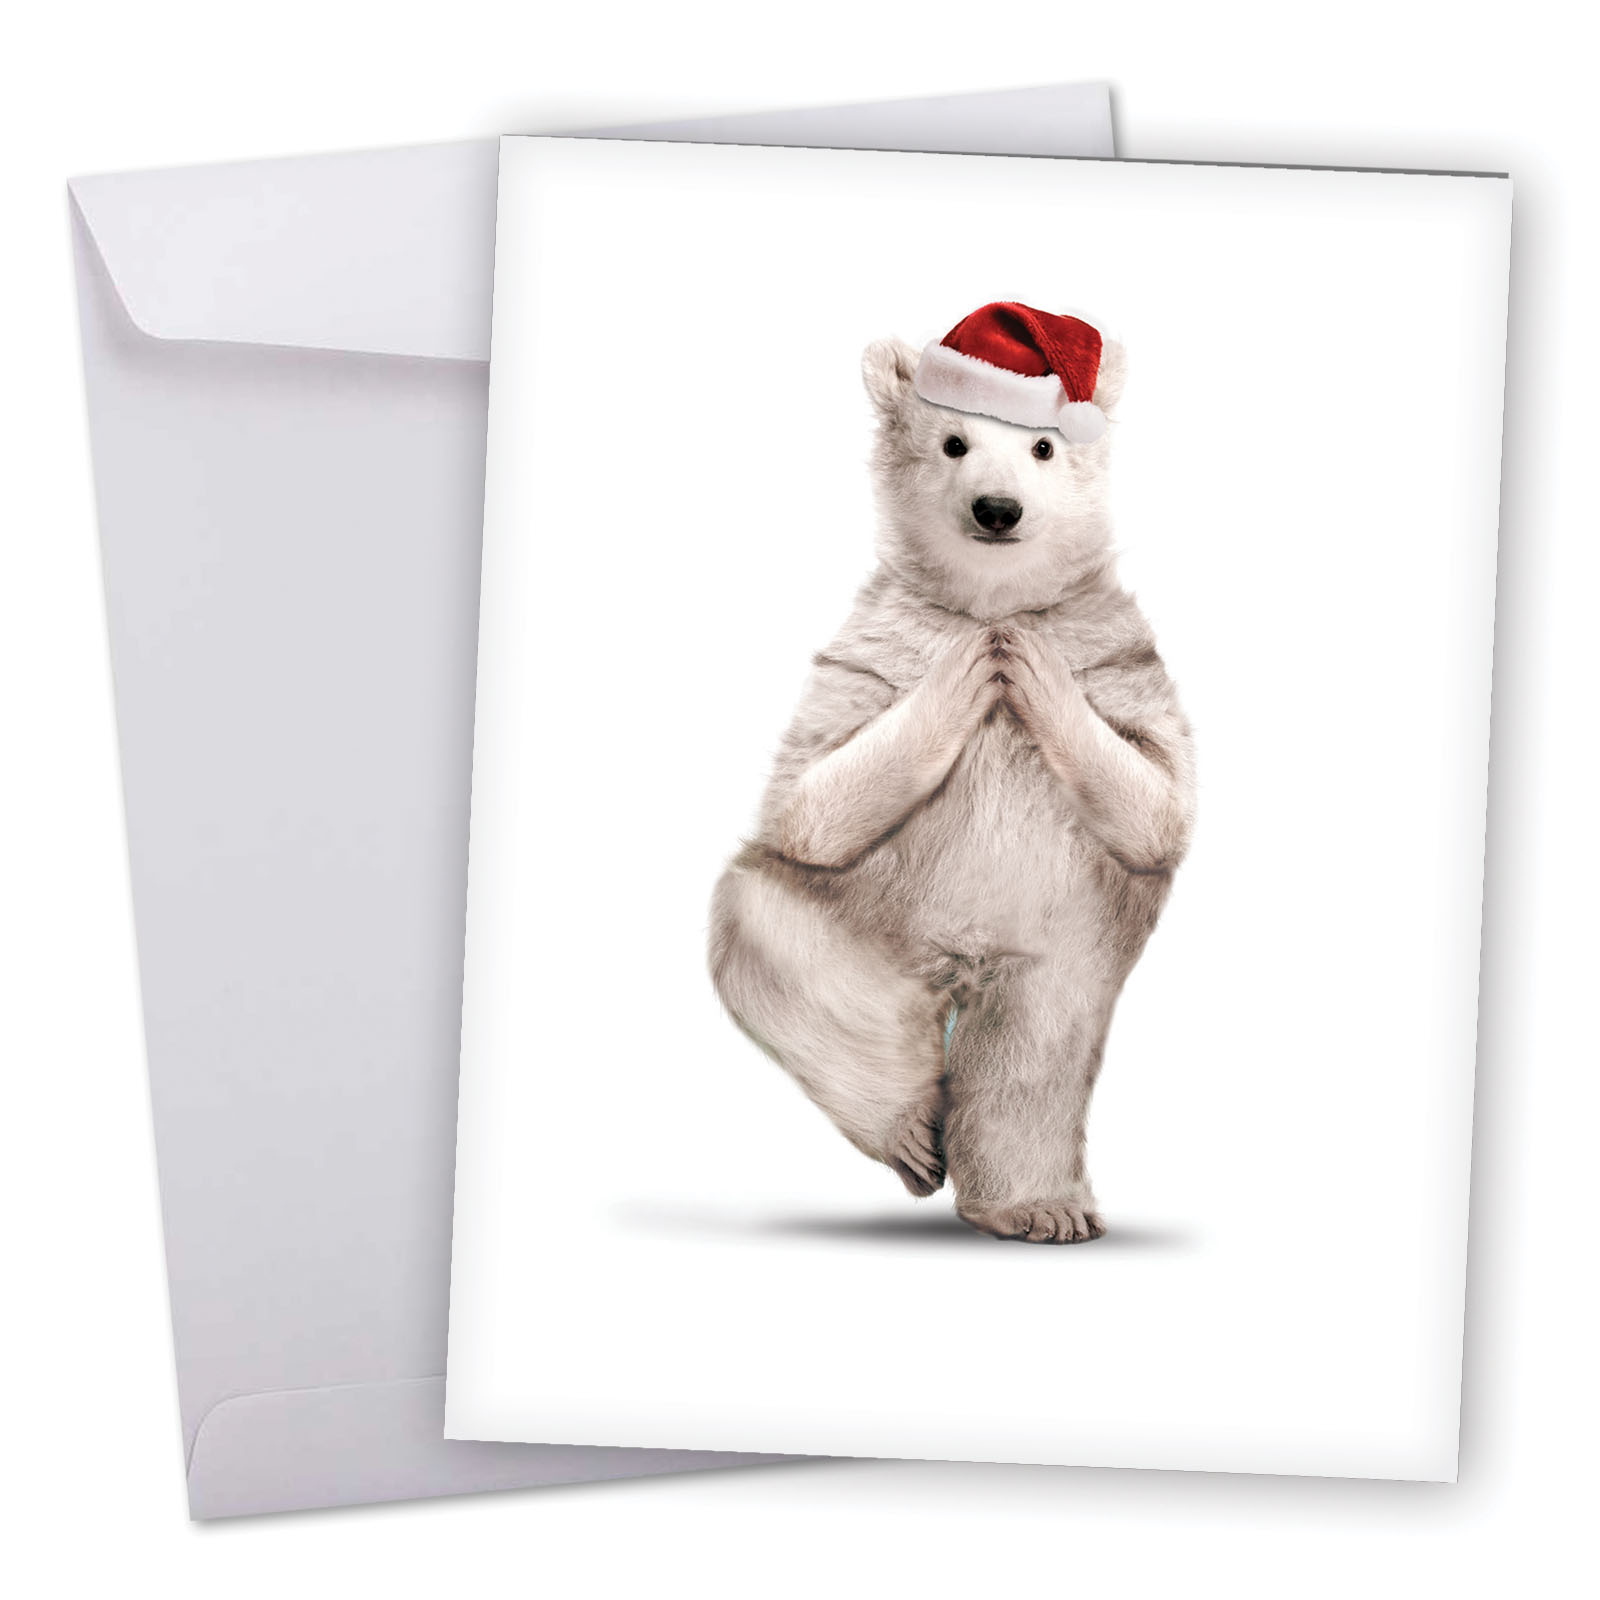 J6547jxsg Extra Large Merry Christmas Greeting Card Yuletide Zoo Yoga Featuring A Flexible Polar Bear Practicing A Yoga Pose While Wearing A Christmas Hat Greeting Card With Envelope By The Best Ca